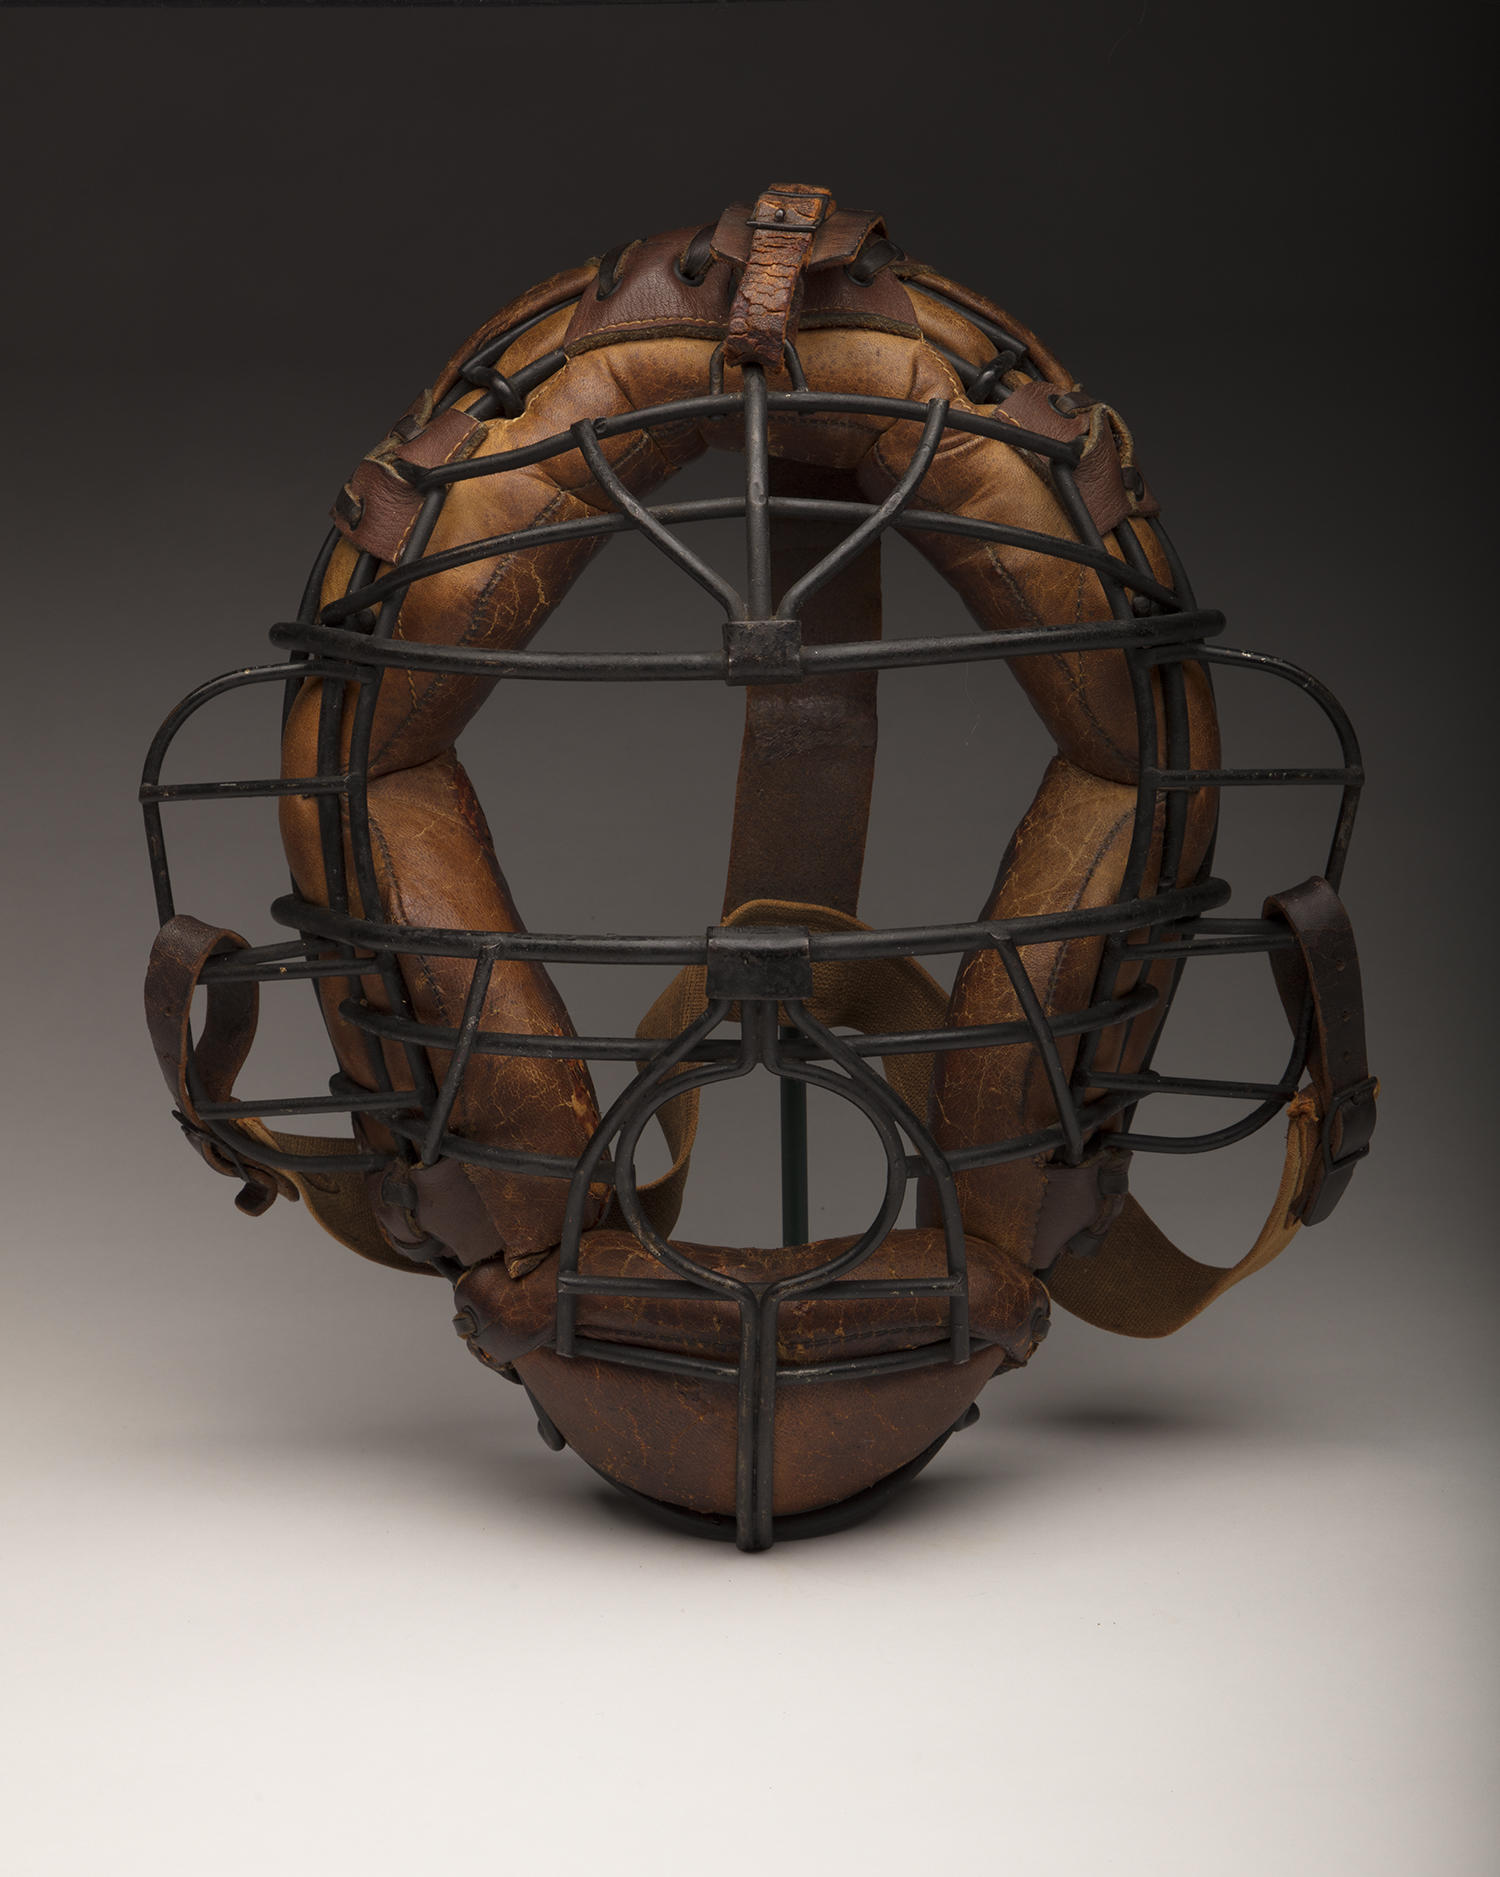 This catcher's mask, worn by Hall of Famer Mickey Cochrane, has been conserved. (Milo Stewart Jr. / National Baseball Hall of Fame and Museum)